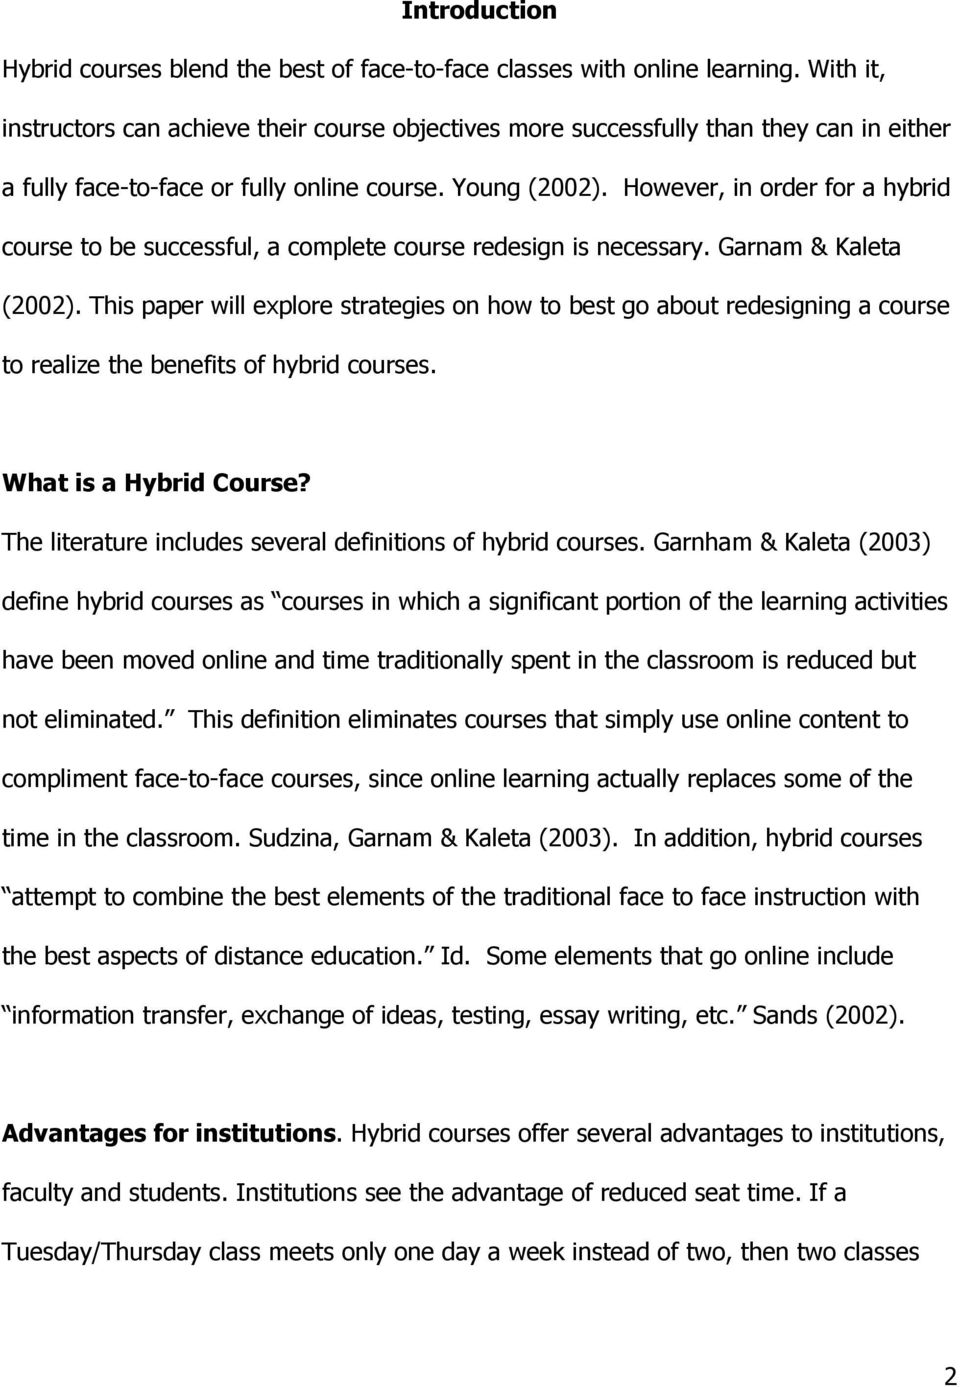 However, in order for a hybrid course to be successful, a complete course redesign is necessary. Garnam & Kaleta (2002).